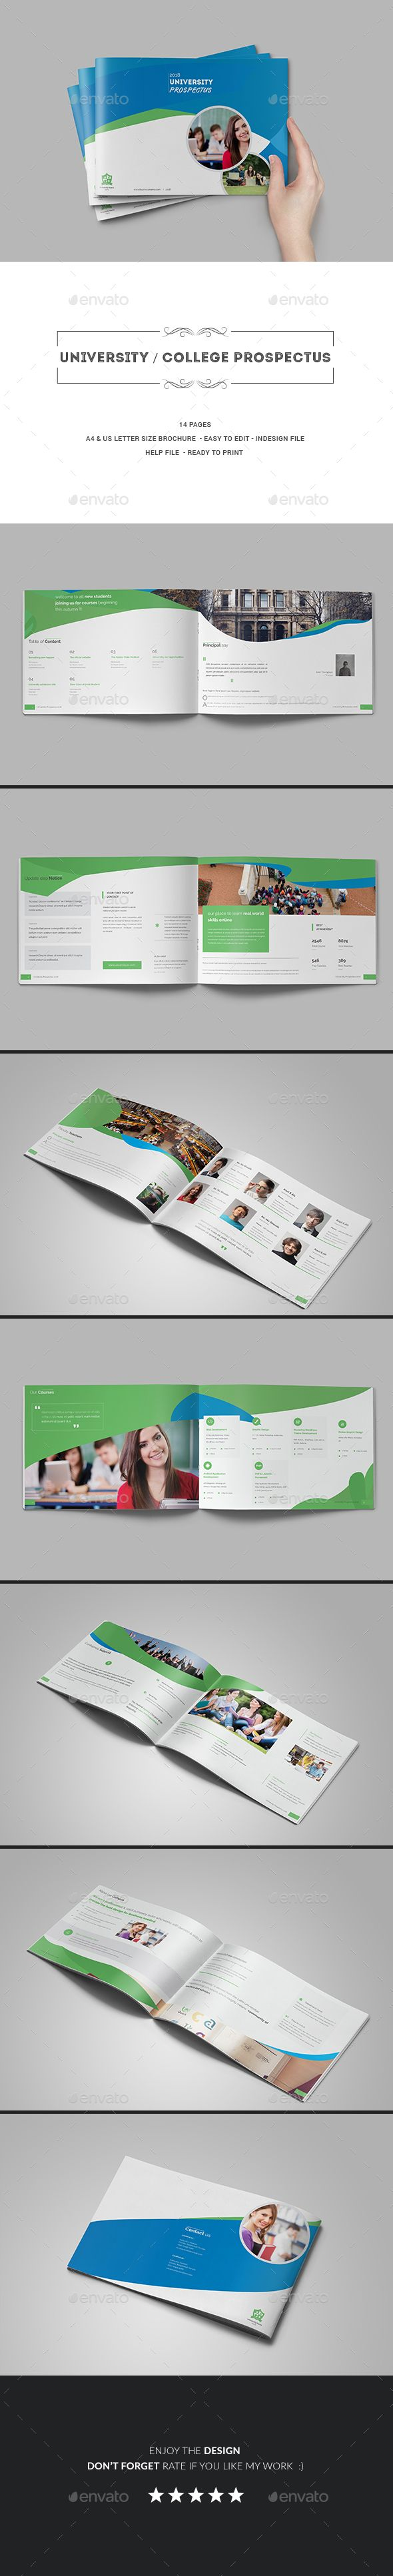 University  College Prospectus Brochure Template Indesign Indd